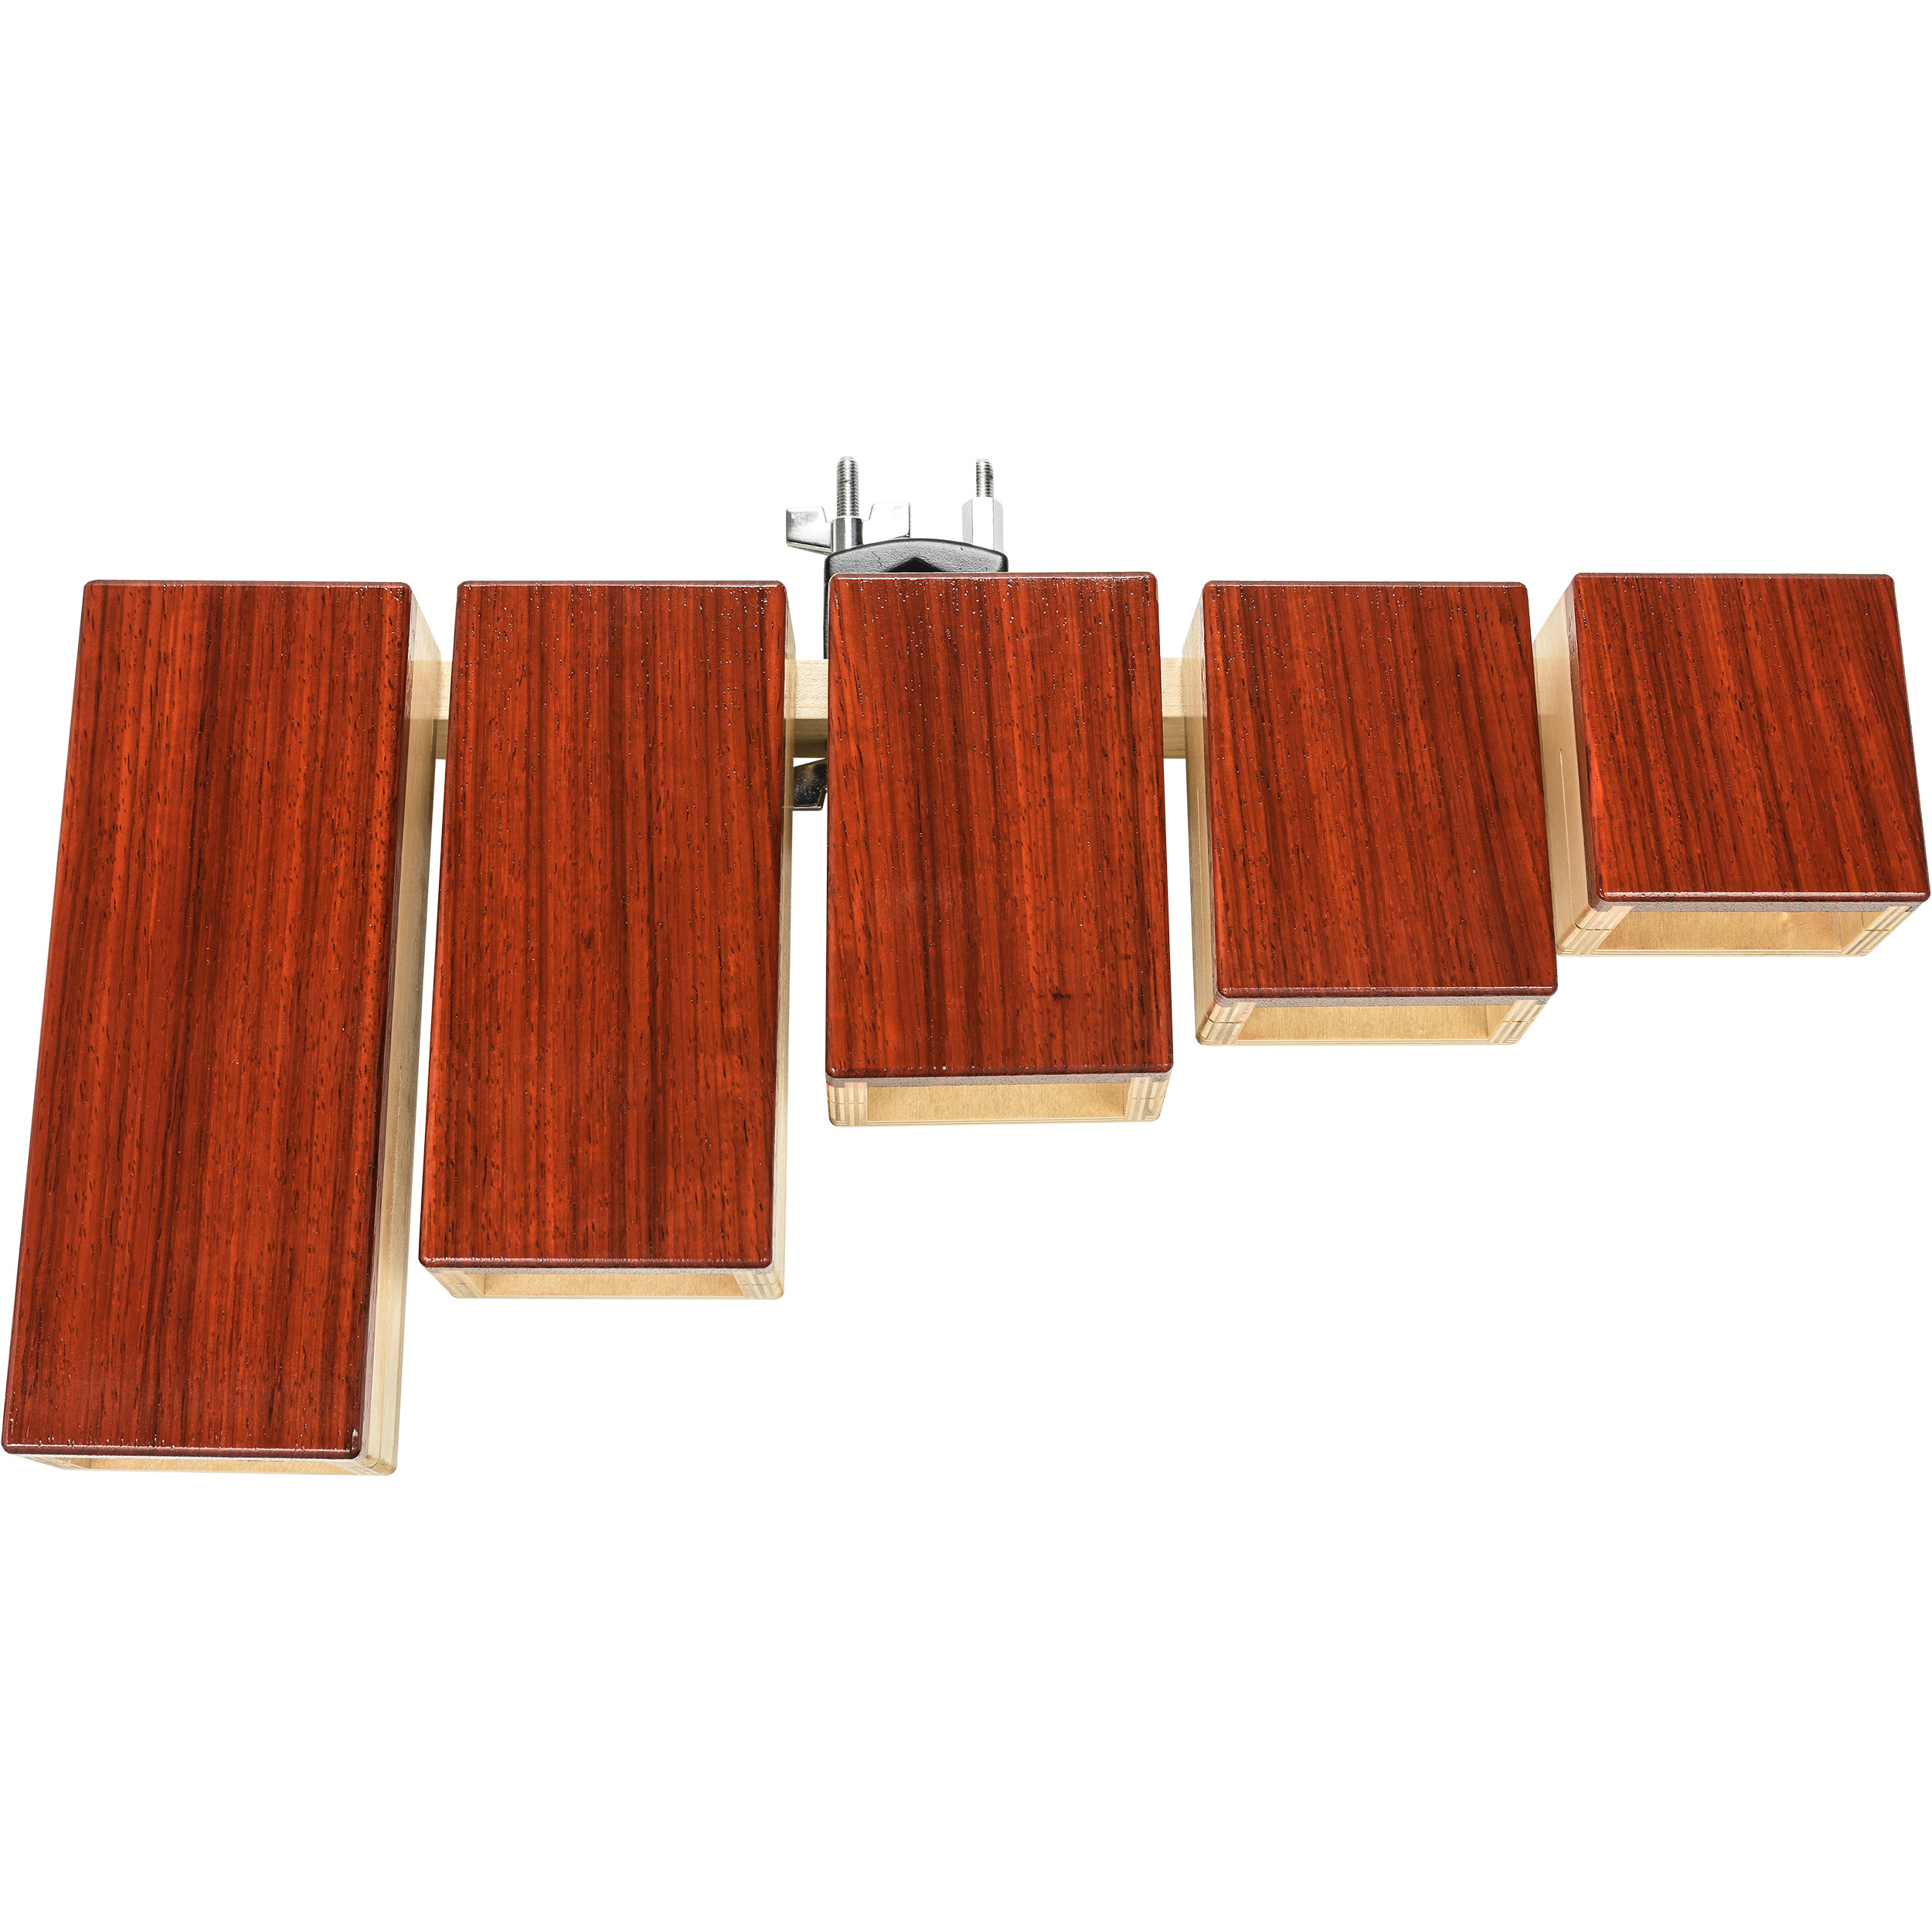 Rustic Percussion Padauk Temple Blocks (Stand not included)